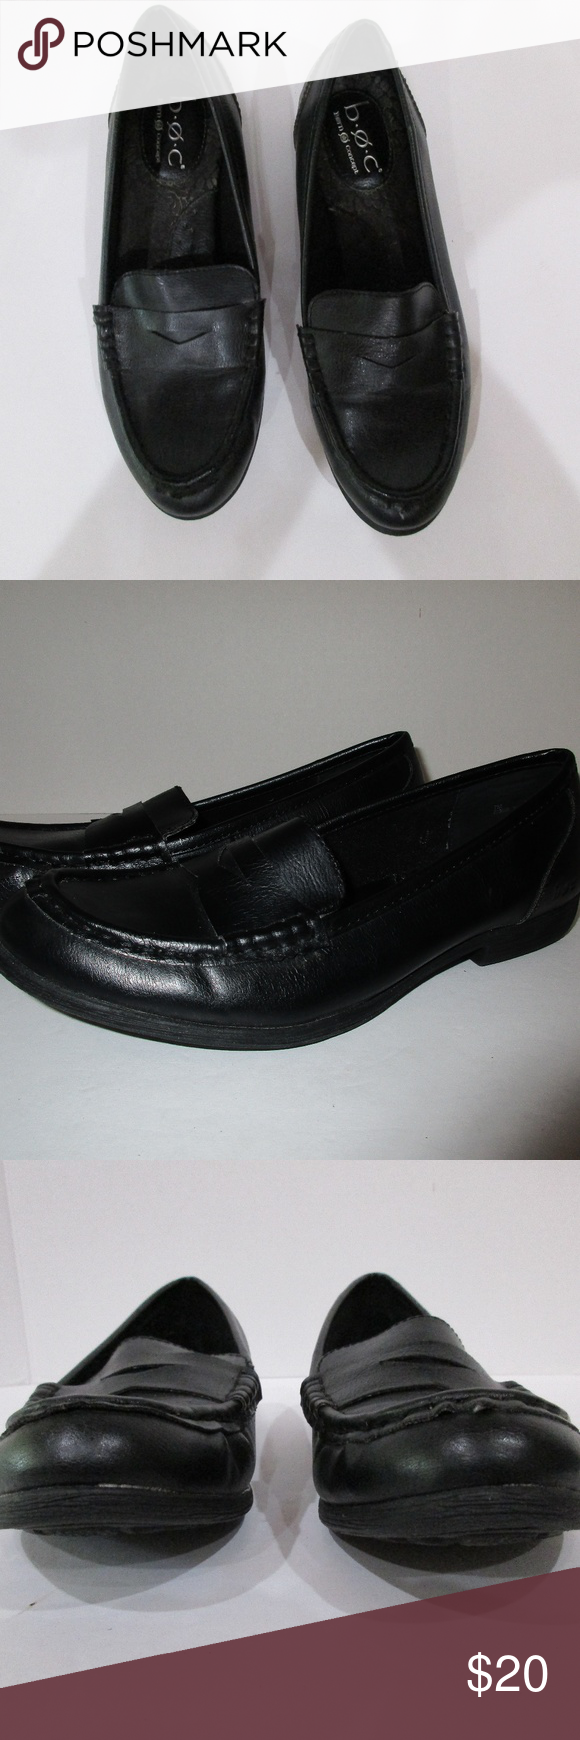 3aaccd729df Born Womens Penny Loafers Size 7M Black Vegan b.o.c. Born Concept Women s  Penny Loafers Size 7M Black Vegan - Man Made Very good